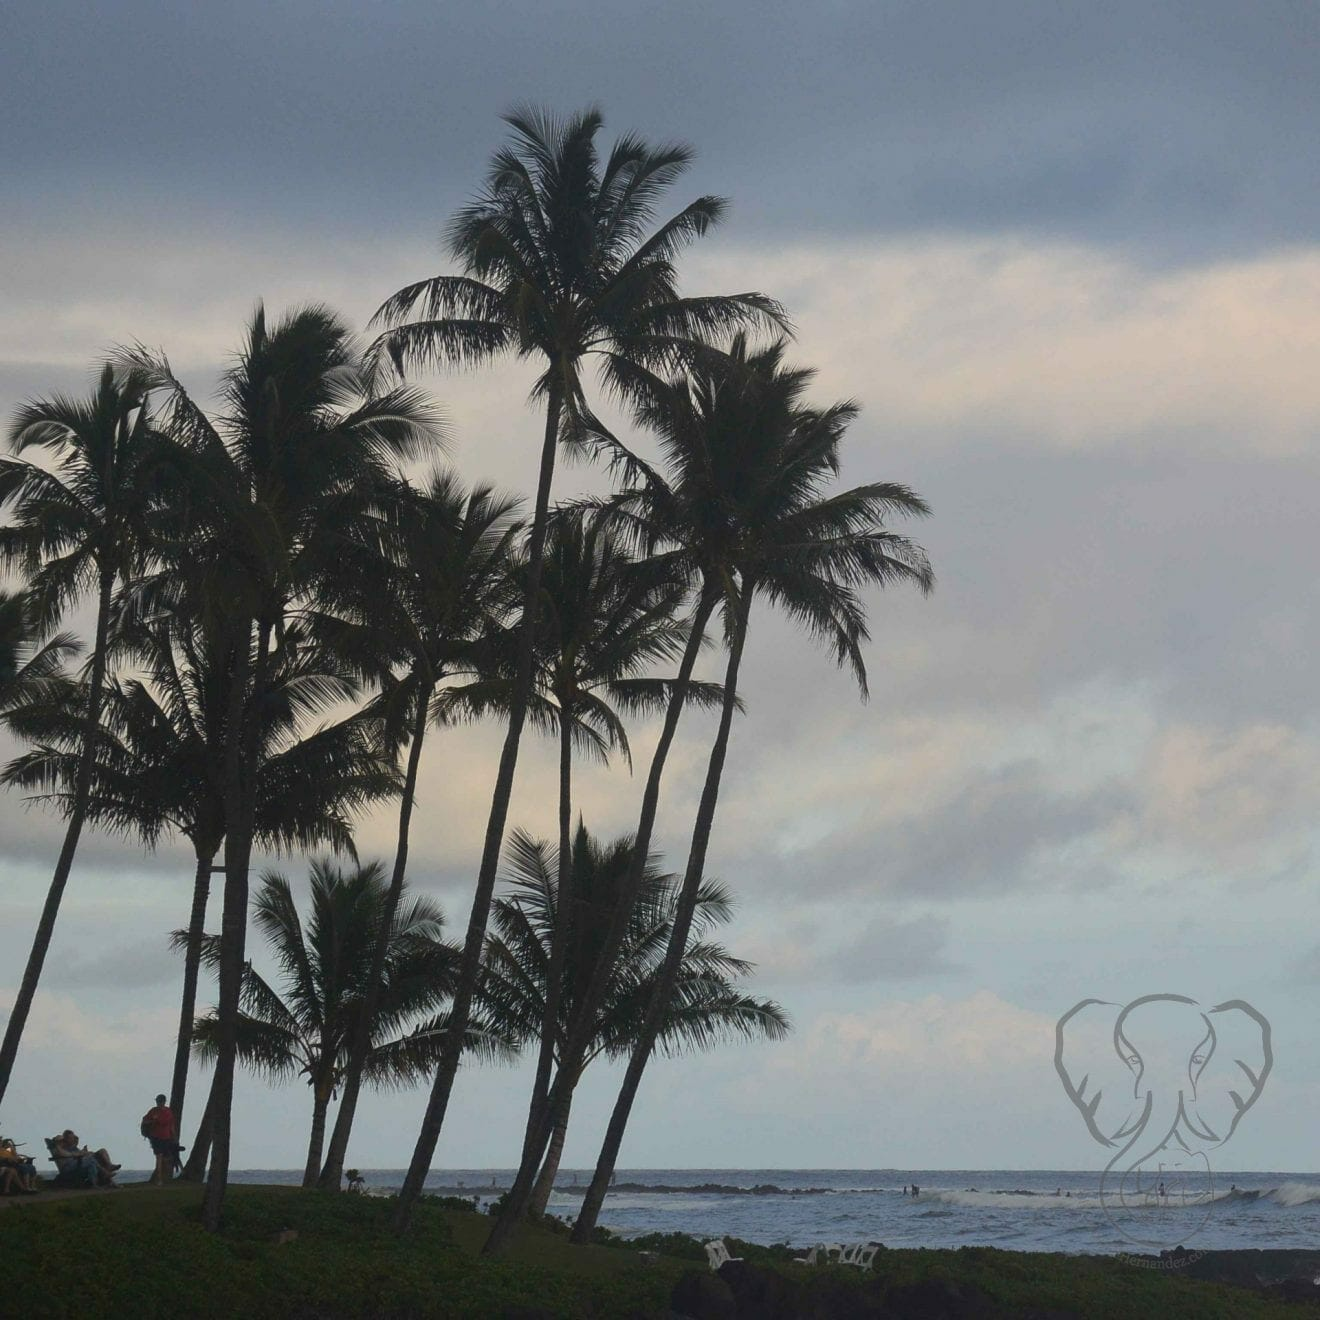 Palm tree over the ocean in late afternoon in Kaua'i, Hawai'i (MIranda Hernandez)